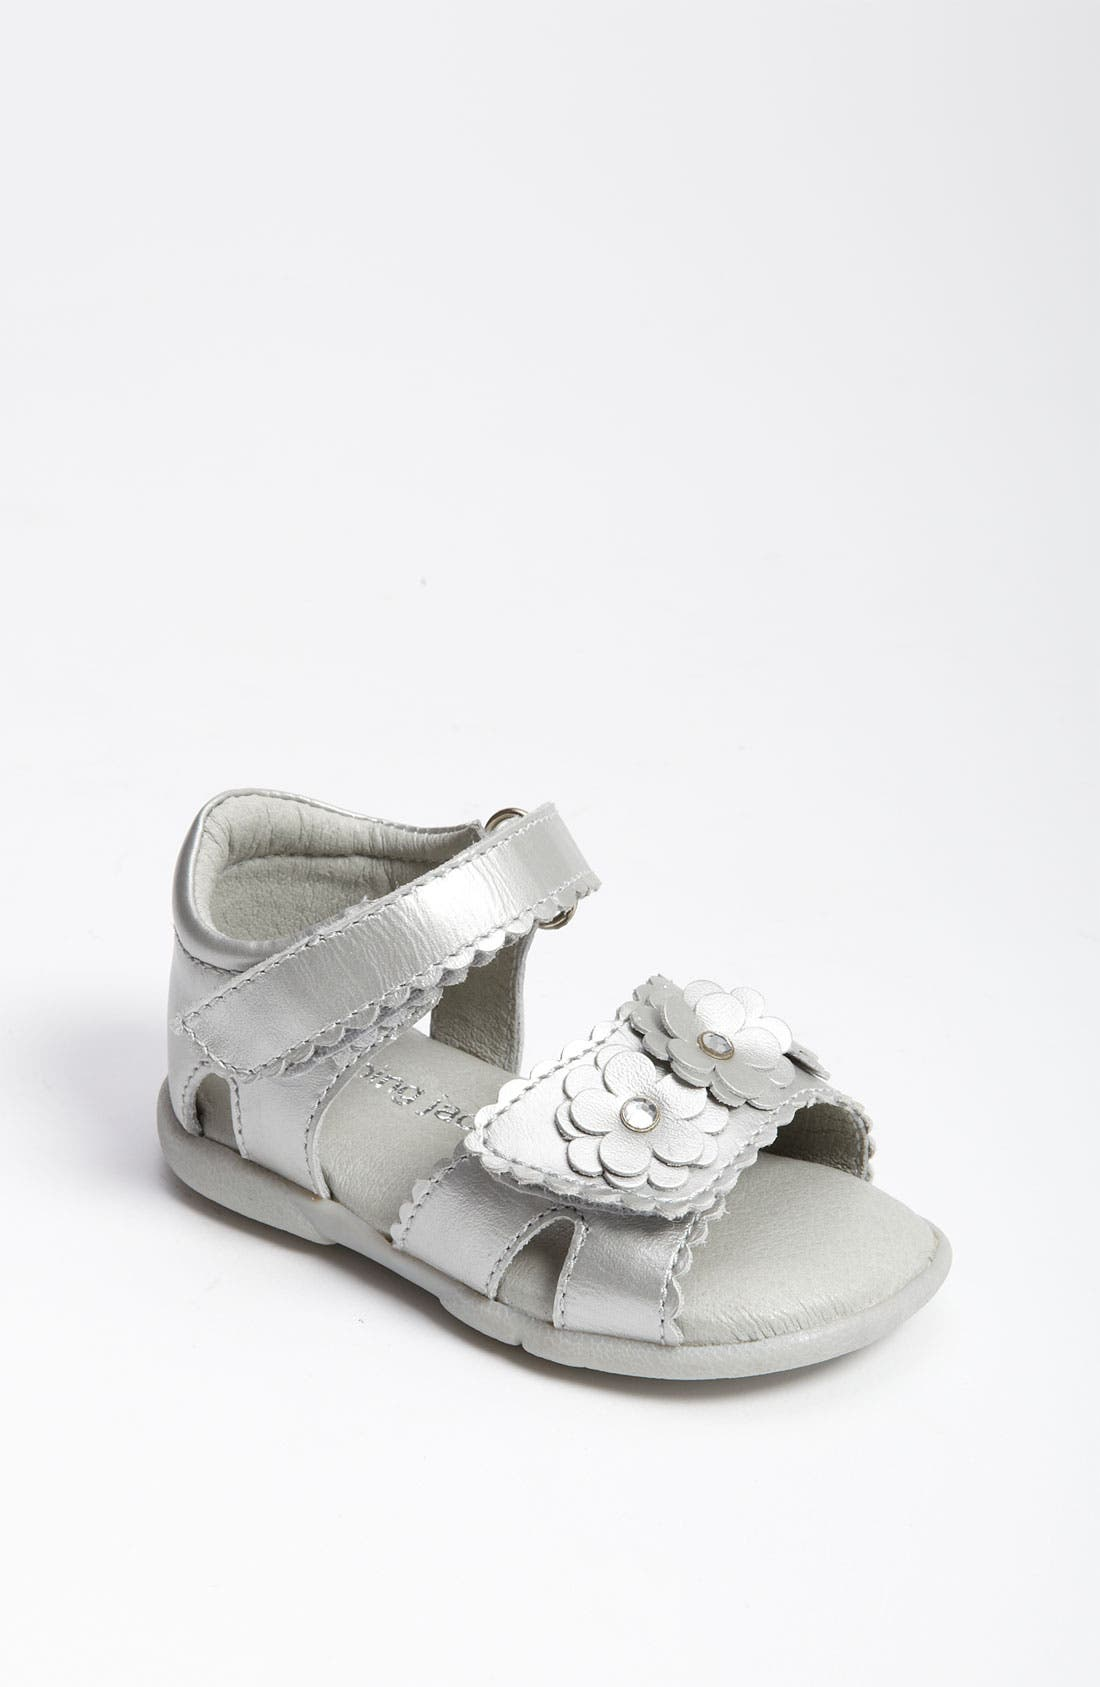 Main Image - Jumping Jacks 'Whisper' Sandal (Baby, Walker & Toddler)